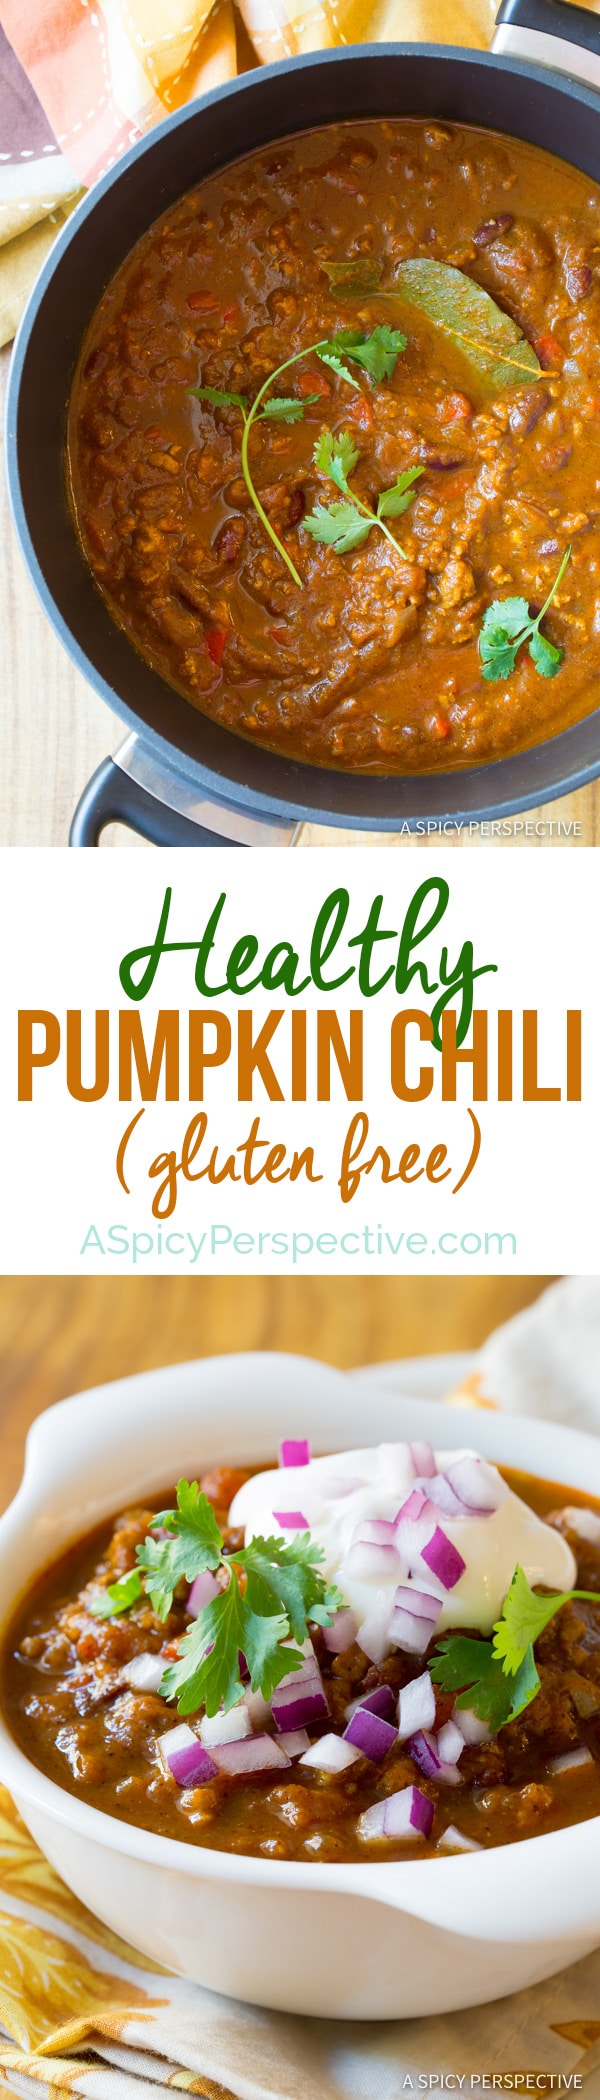 Rich Earthy Pumpkin Chili Recipe (Healthy and Gluten Free!) | ASpicyPerspective.com